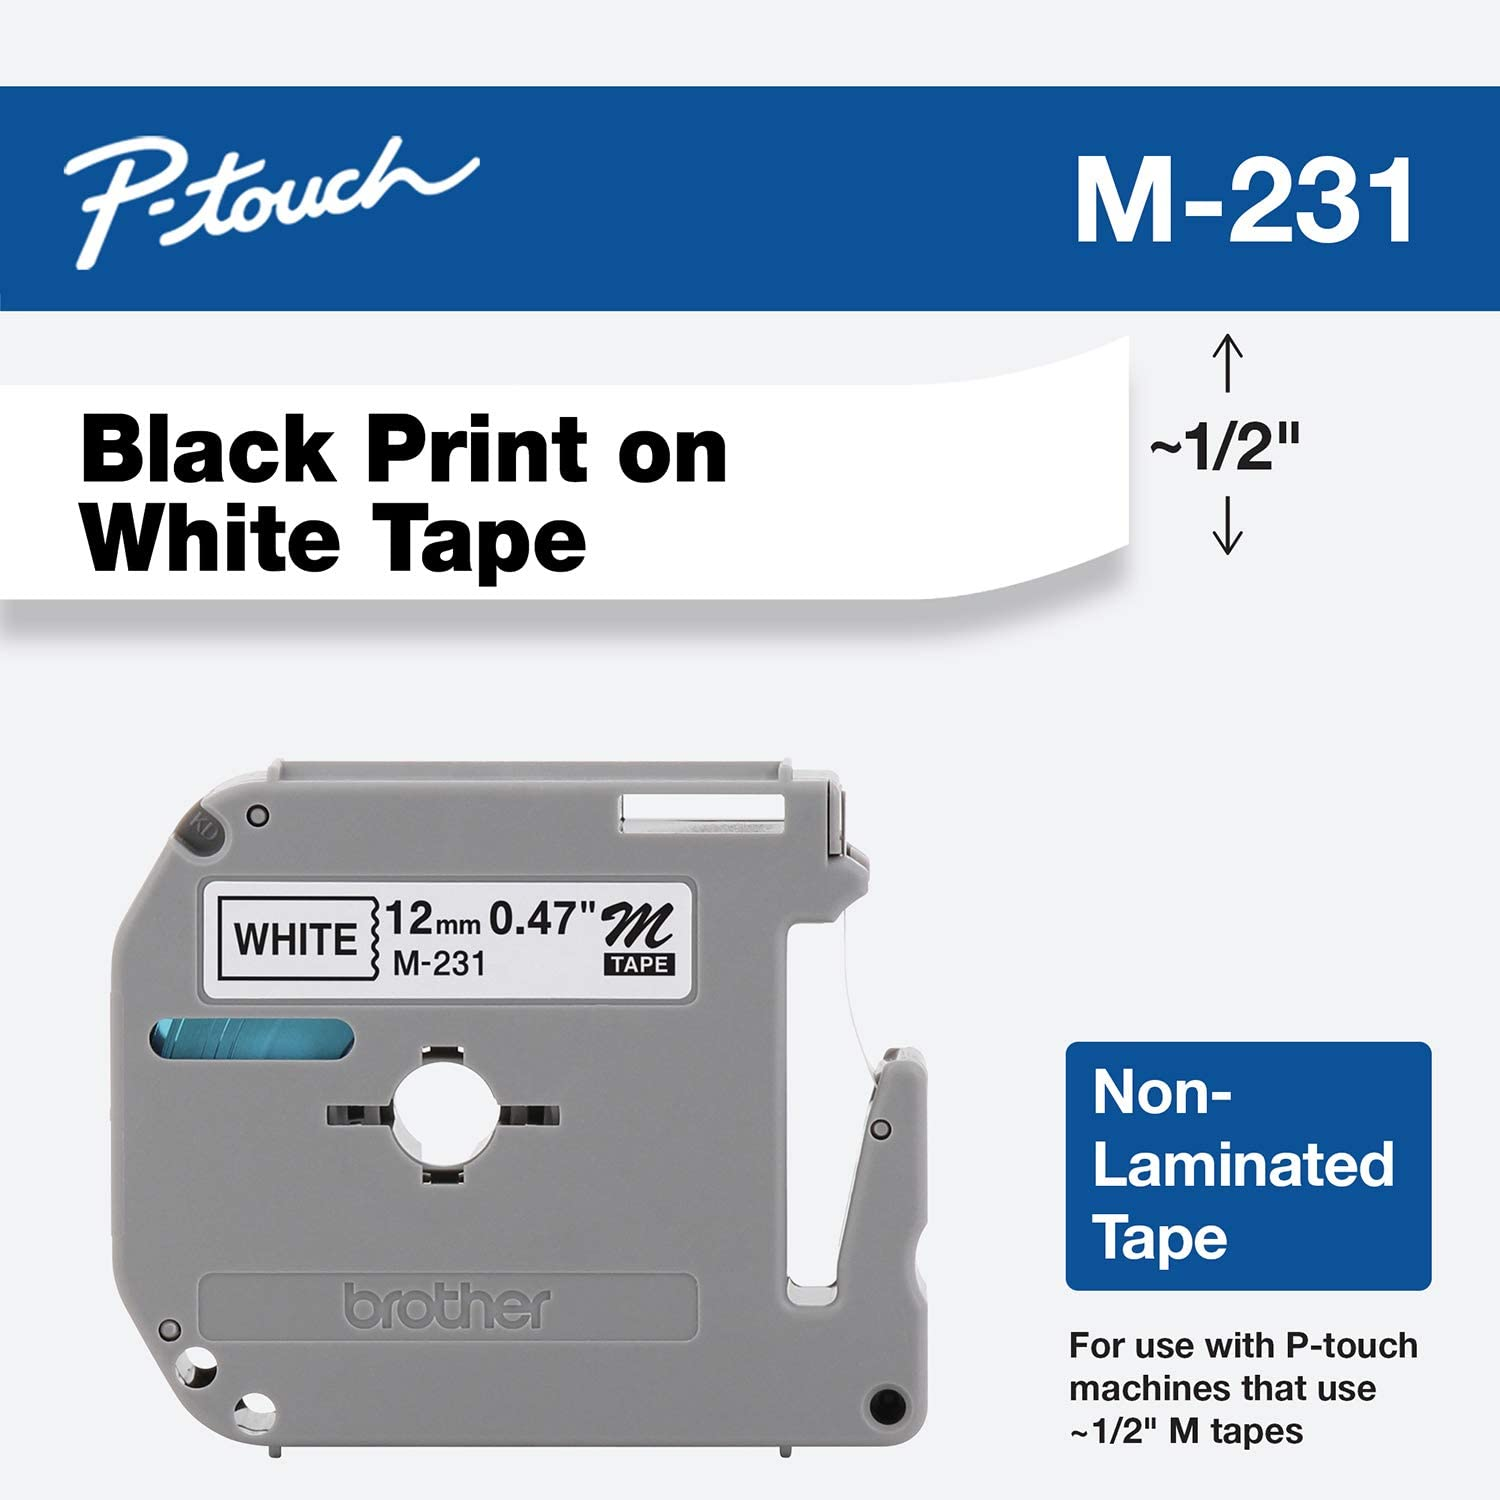 "Brother Genuine P-touch M-231 Tape, 1/2"" (0.47"") Standard P-touch Tape, Black on White, for Indoor Use, Water Resistant, 26.2 Feet (8M), Single-Pack: Office Products"